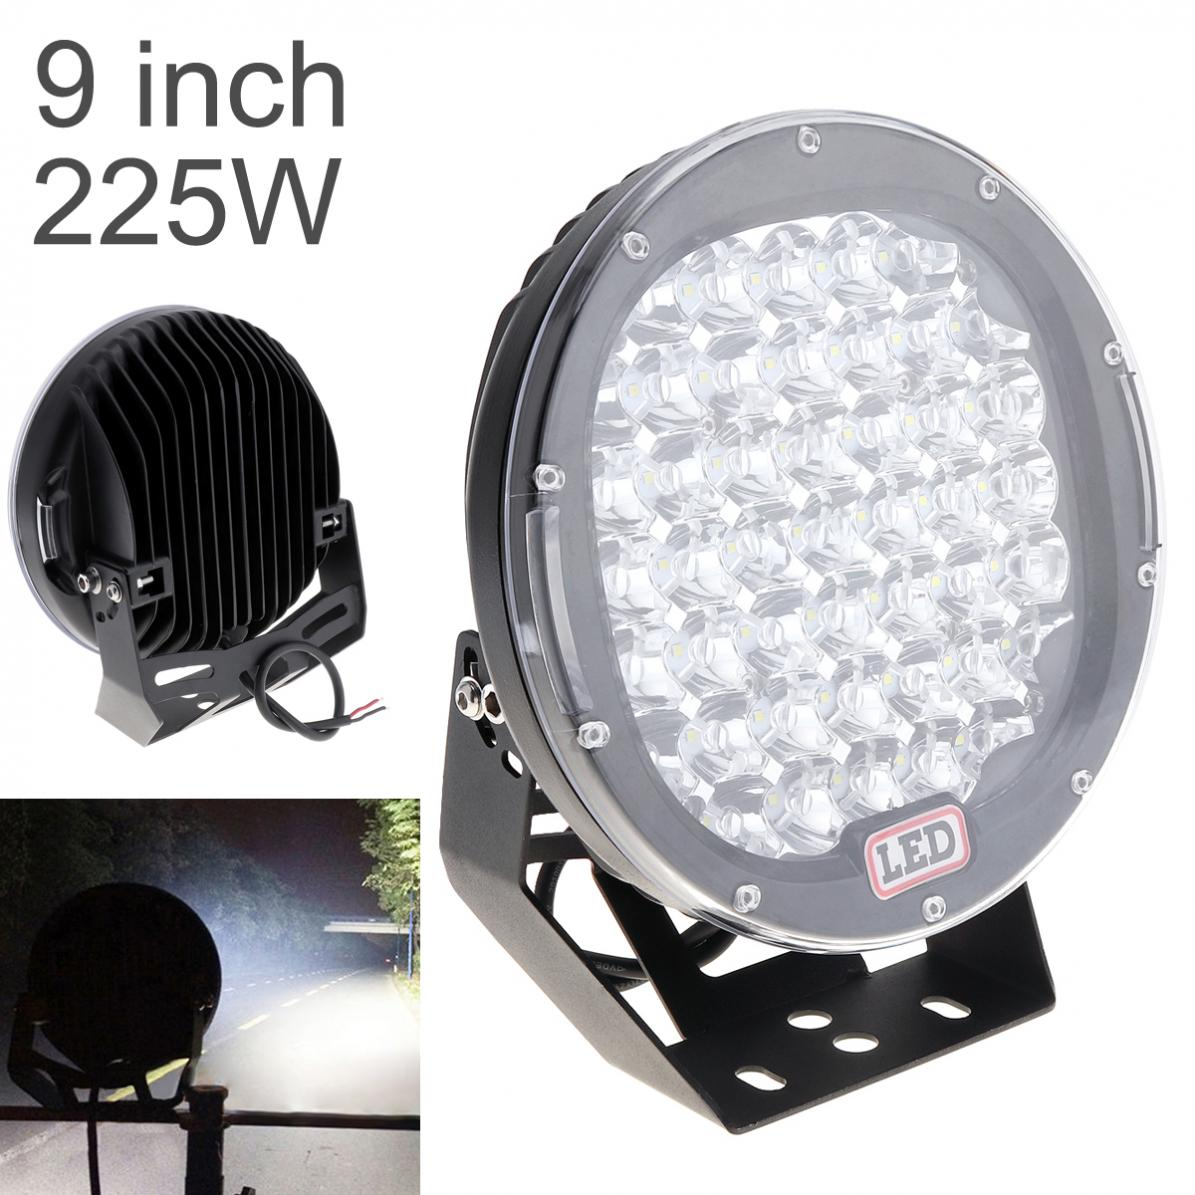 9'' Rounded 225W 45x LED Car Worklight Spot / Flood Light Vehicle Headlight Driving Lights for Offroad SUV ATV Truck Boat guleek 60w type h 4200lm 6000k 6 led white flood spot light worklight bar for car boat